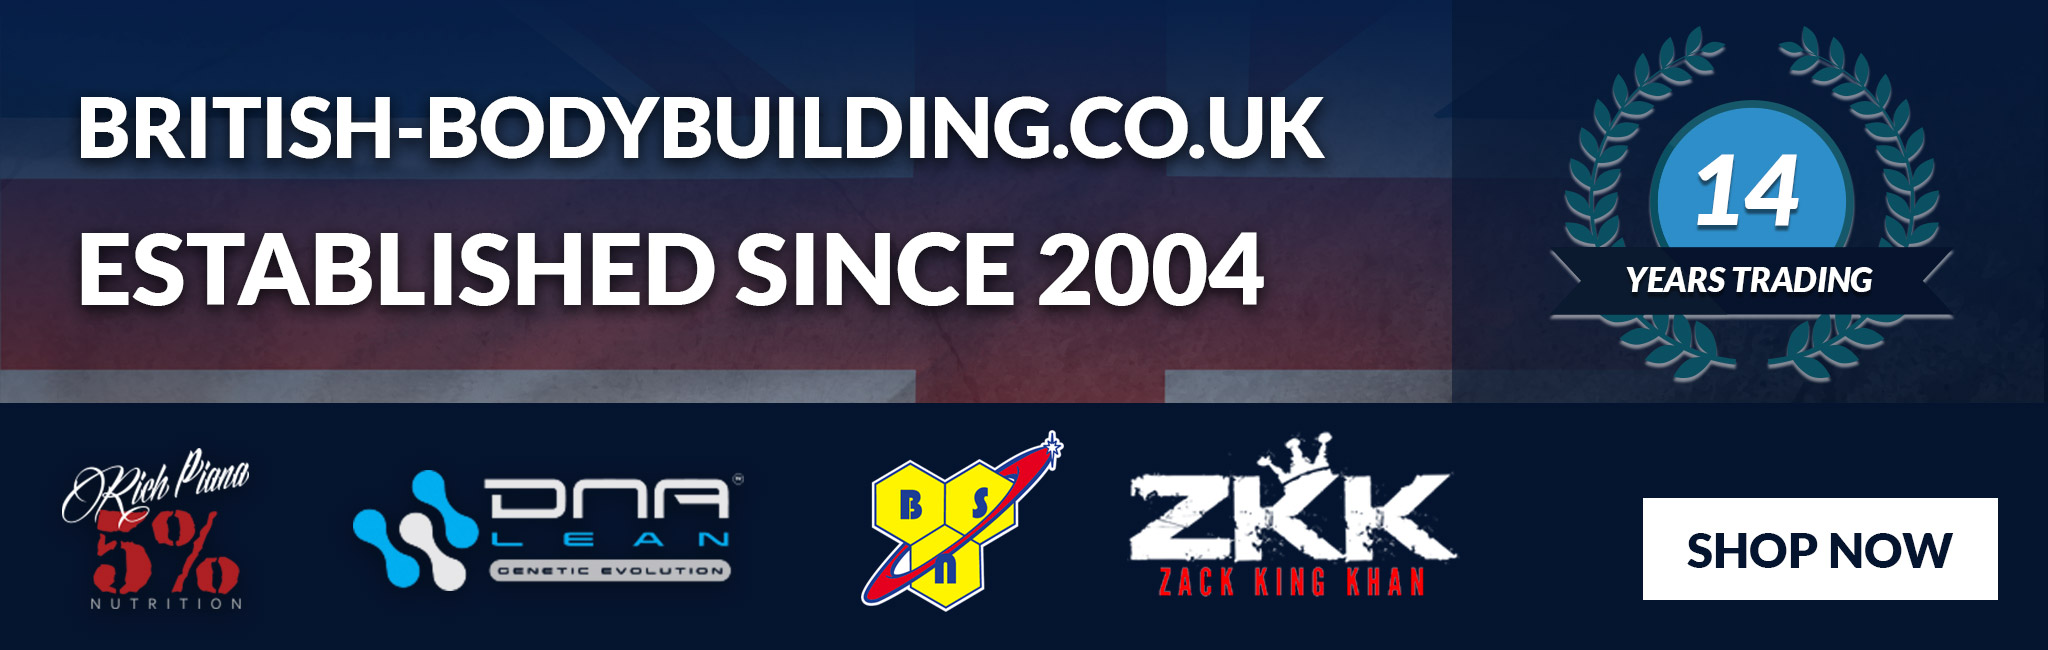 British-Bodybuilding.co.uk - Established since 2004 - 14 Years Trading